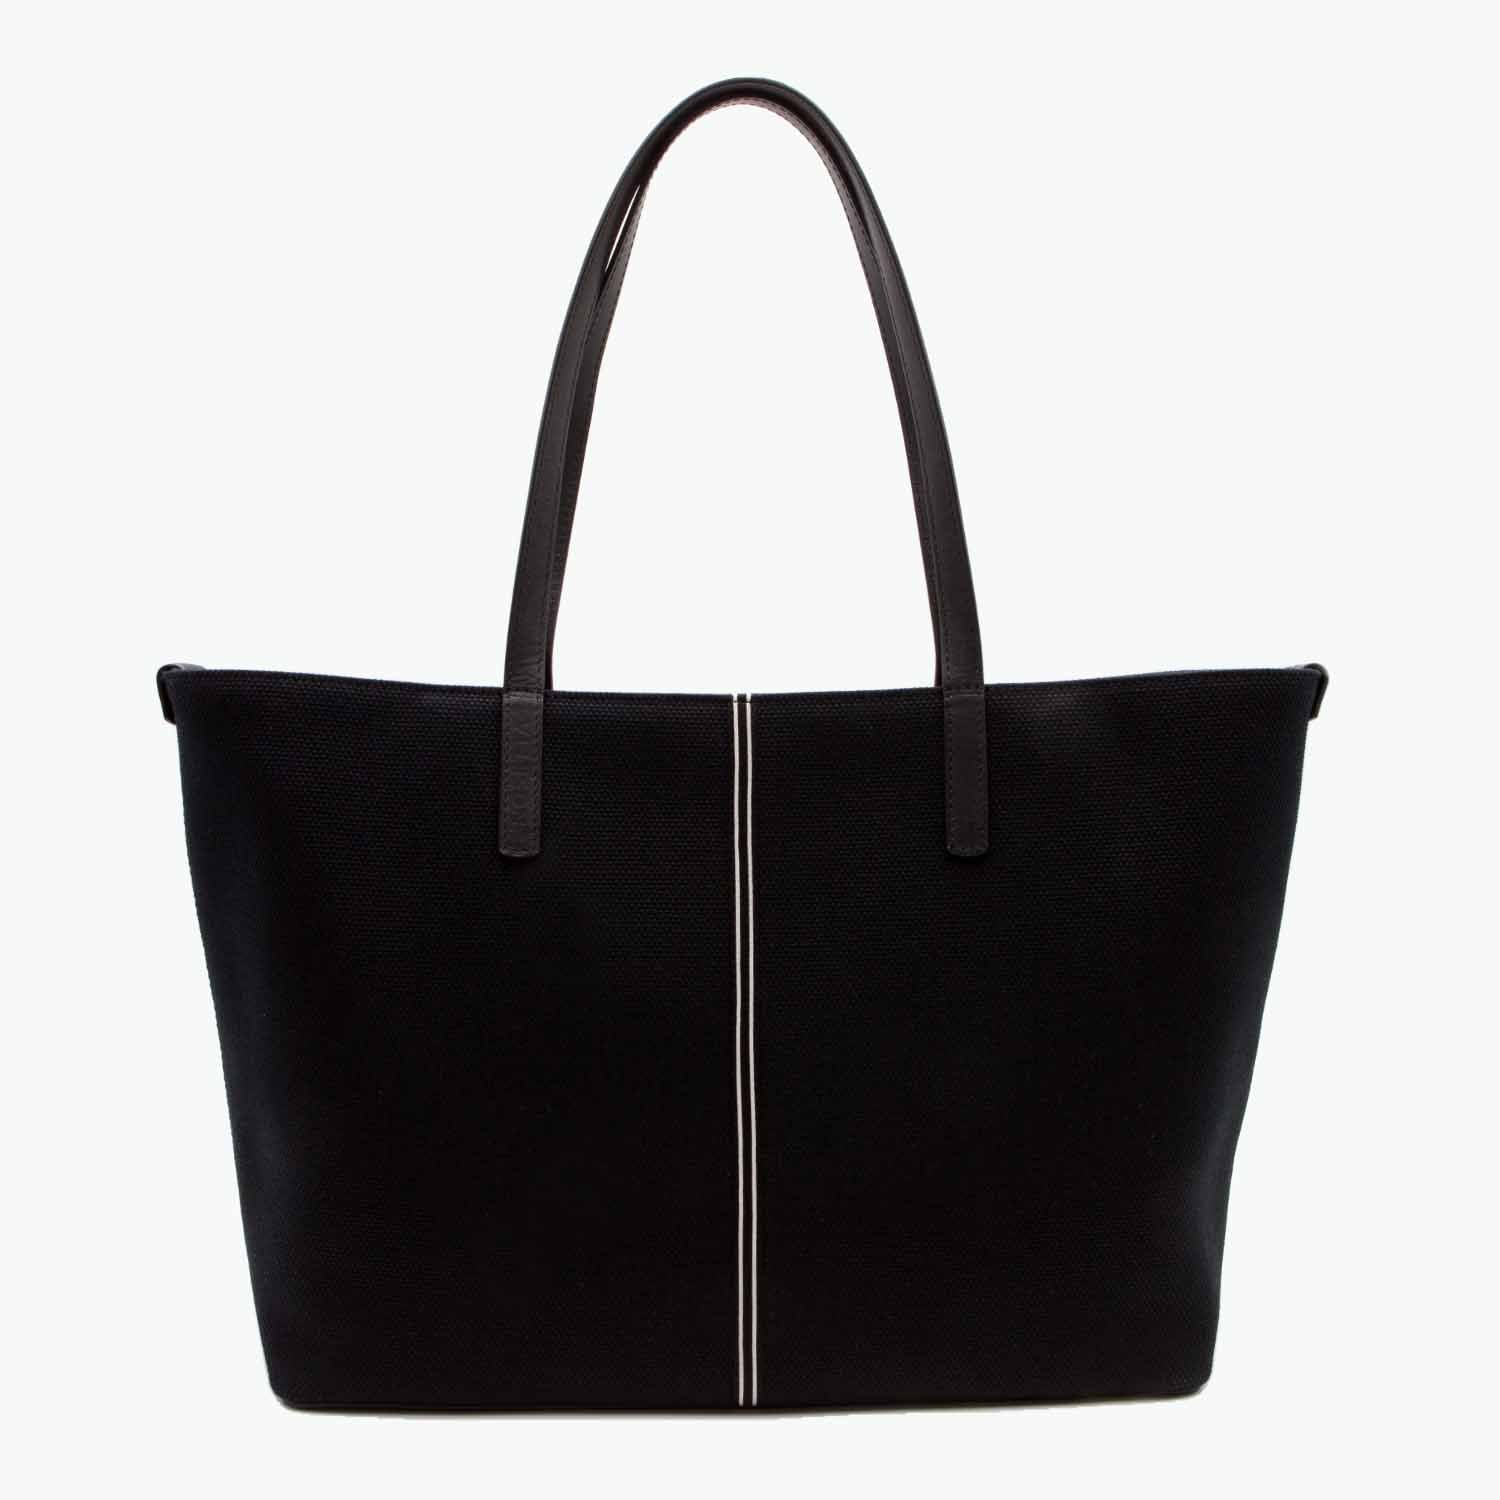 Celesia Medium Tote Cotton Canvas and Leather - Nosetta